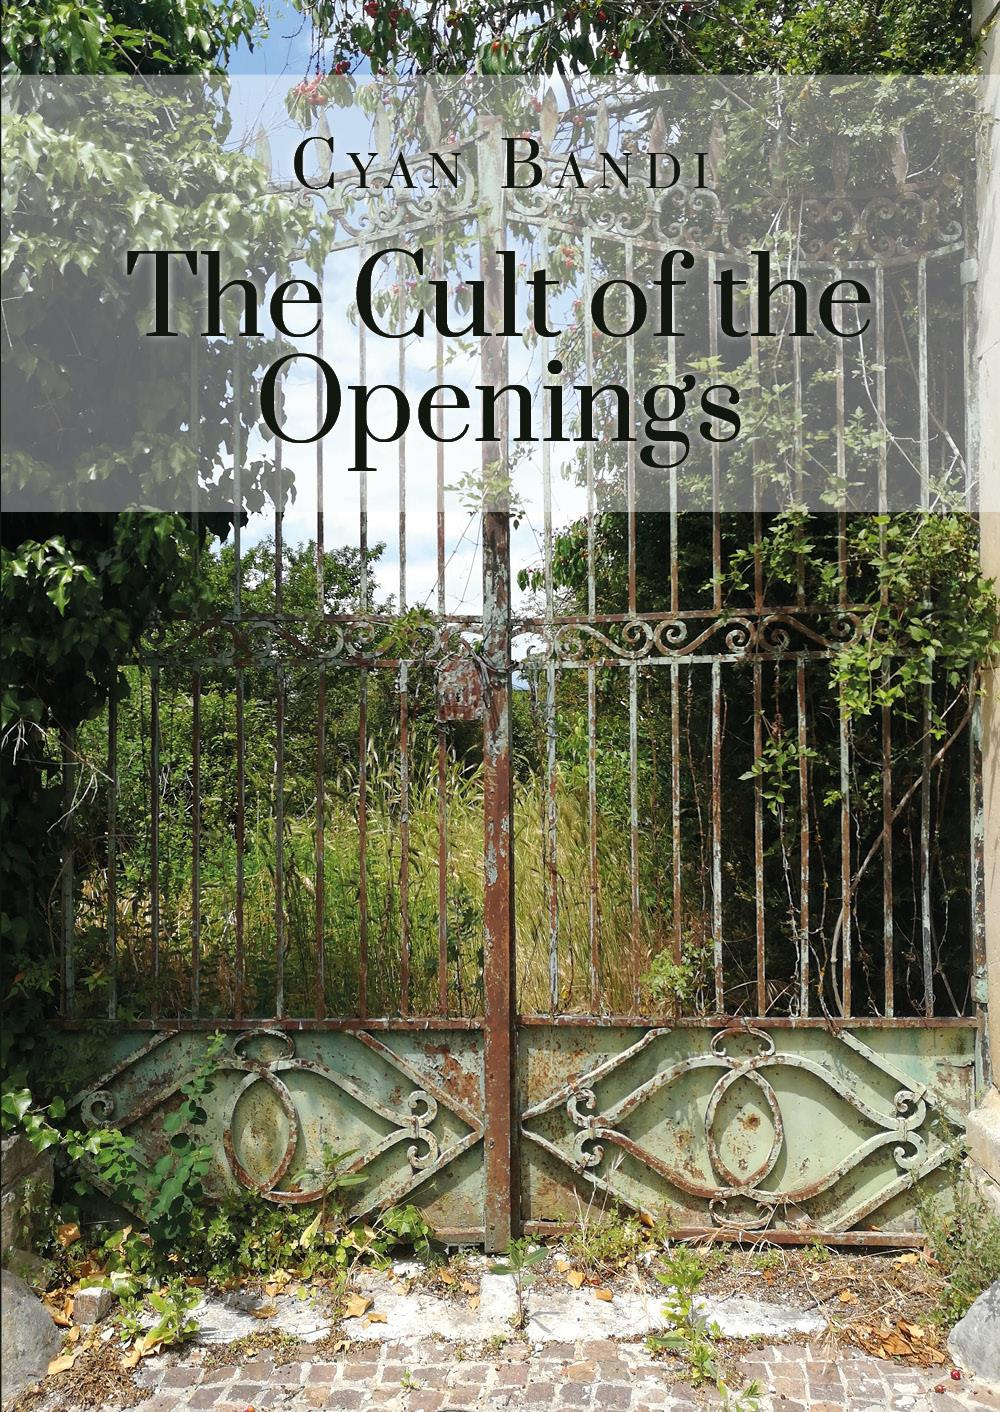 The Cult of the Openings